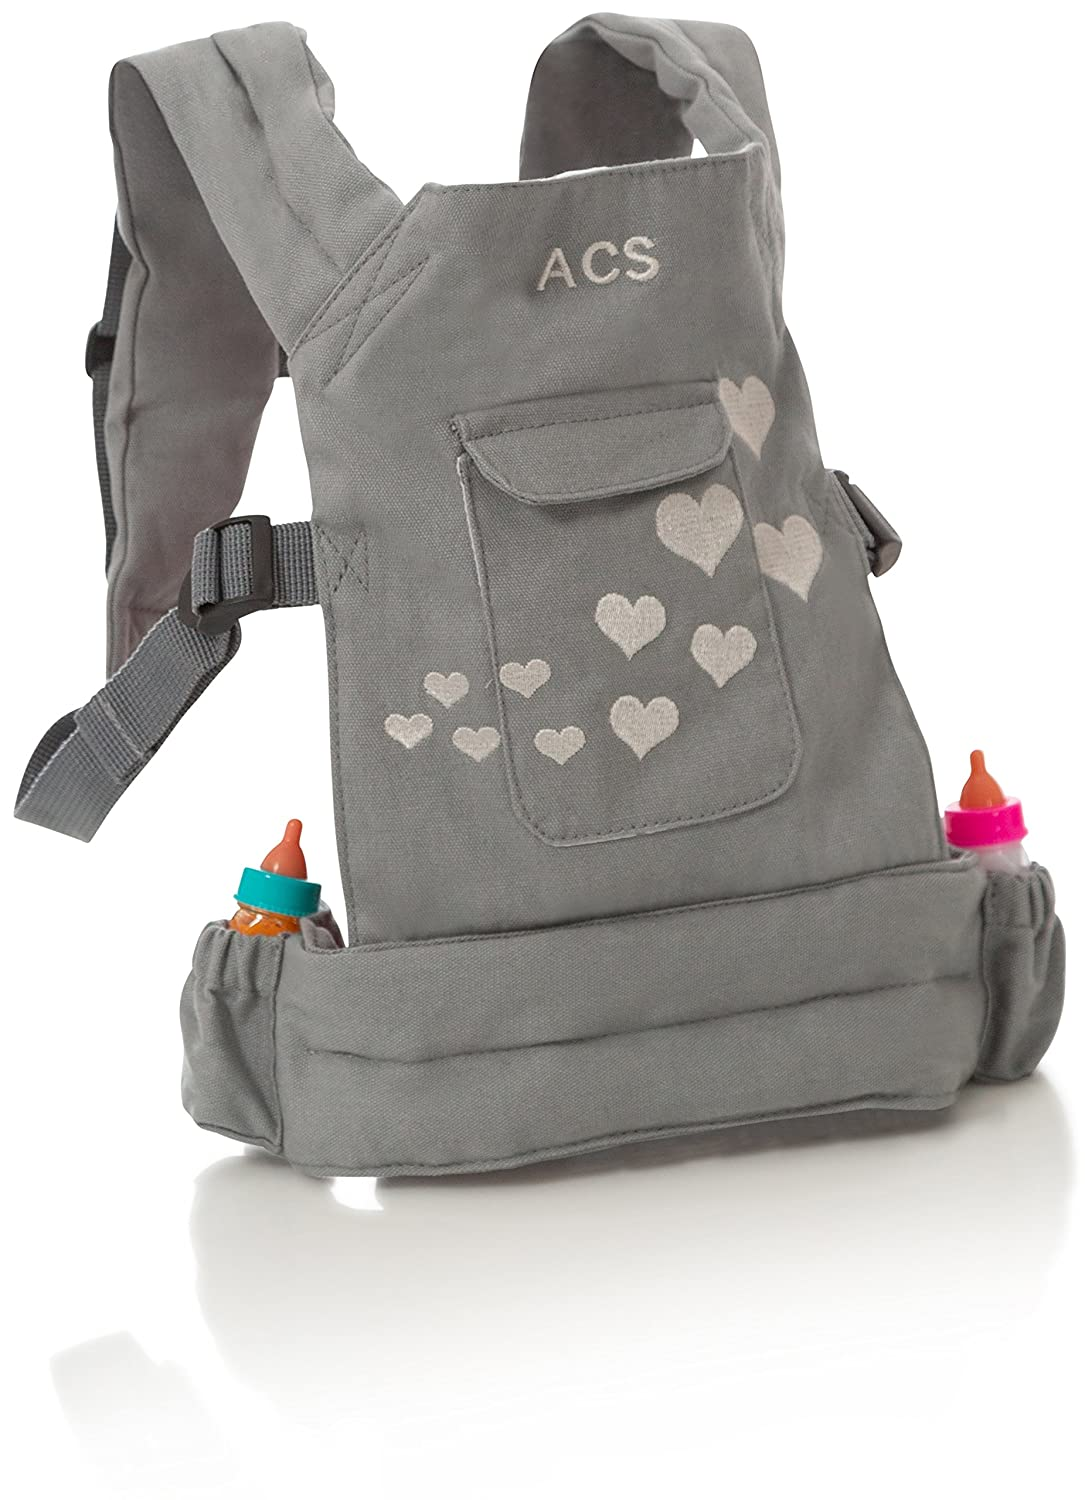 ACS Baby Doll Carrier Backpack - Grey, Fits 18 inch Dolls Includes Set of Magic Toy Bottles